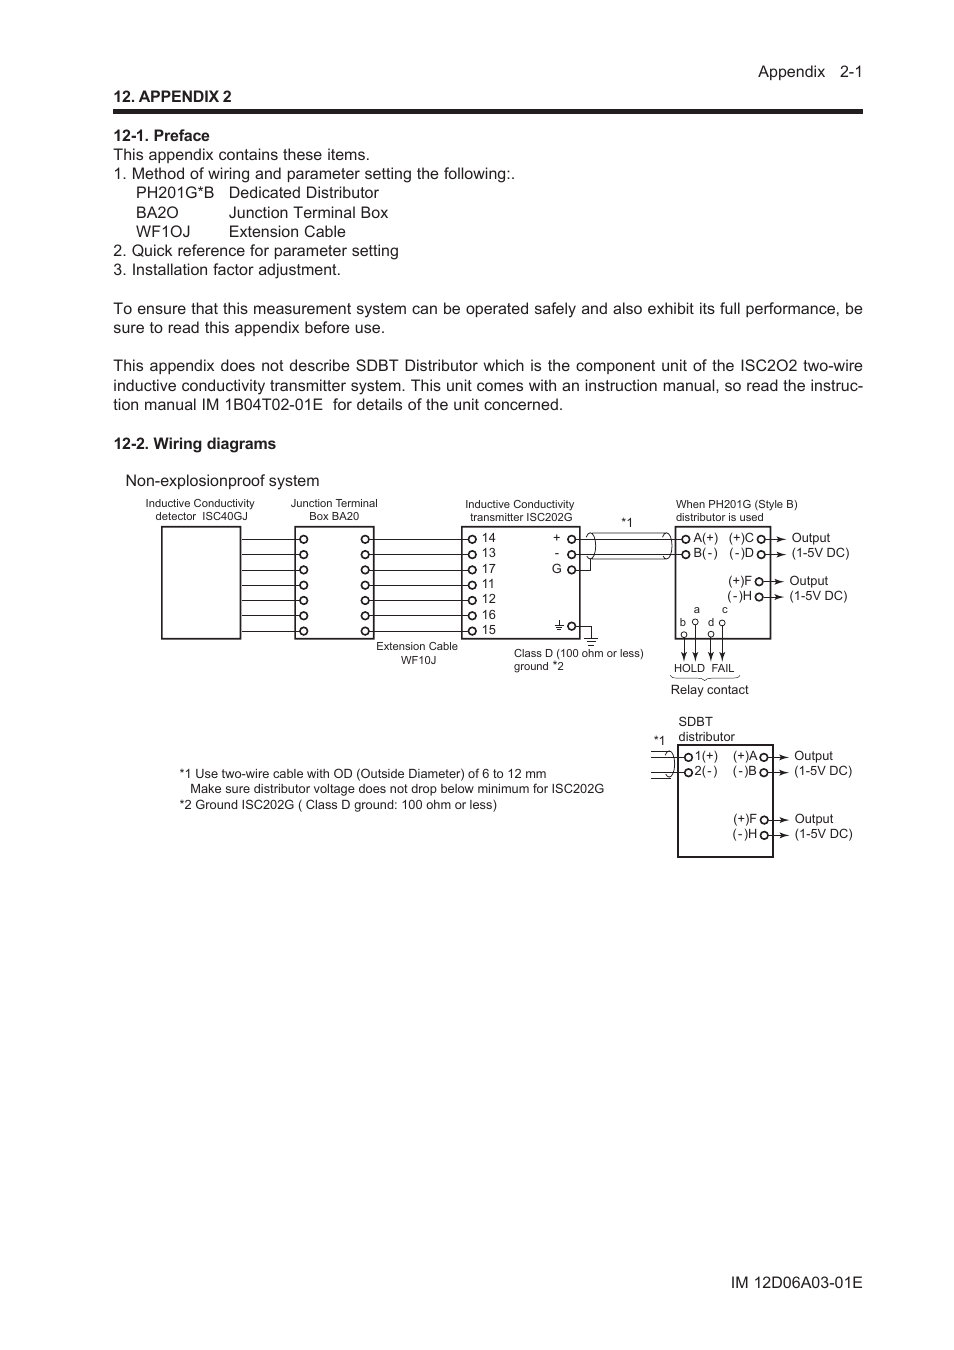 Appendix 2 1 Preface Wiring Diagrams Yokogawa Exa Isc202 Wire Distributor Diagram Conductivity Transmitter Analyzer User Manual Page 73 119